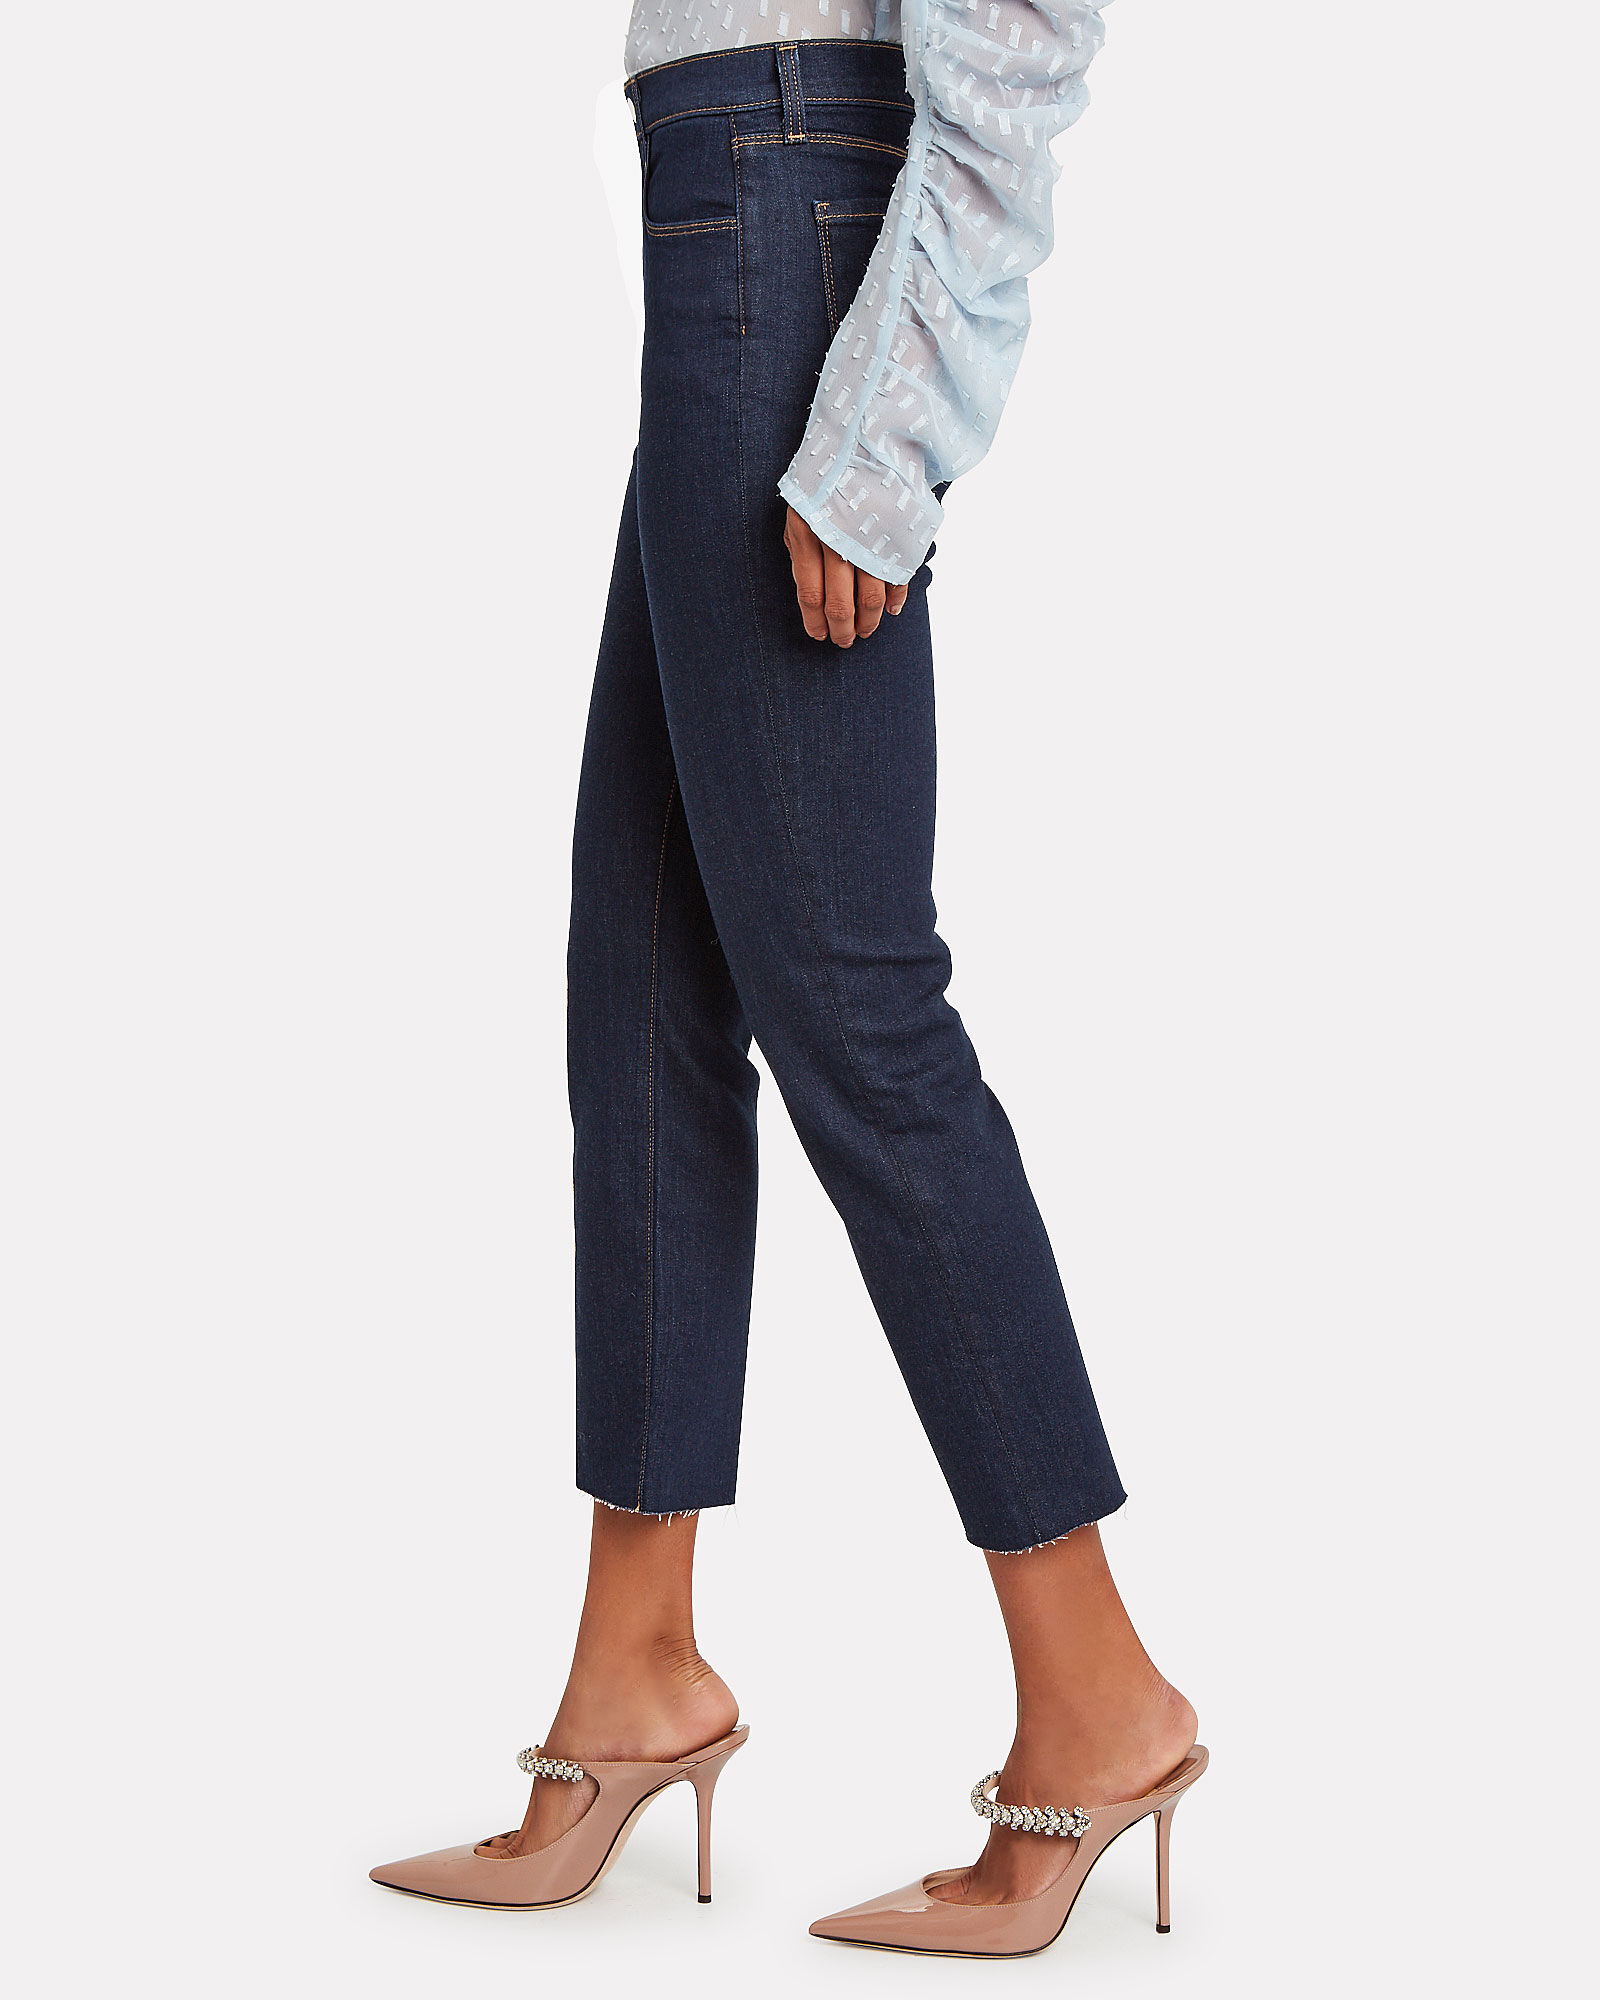 Sada Slim Straight Leg Jeans, INDIGO DENIM WASH, hi-res